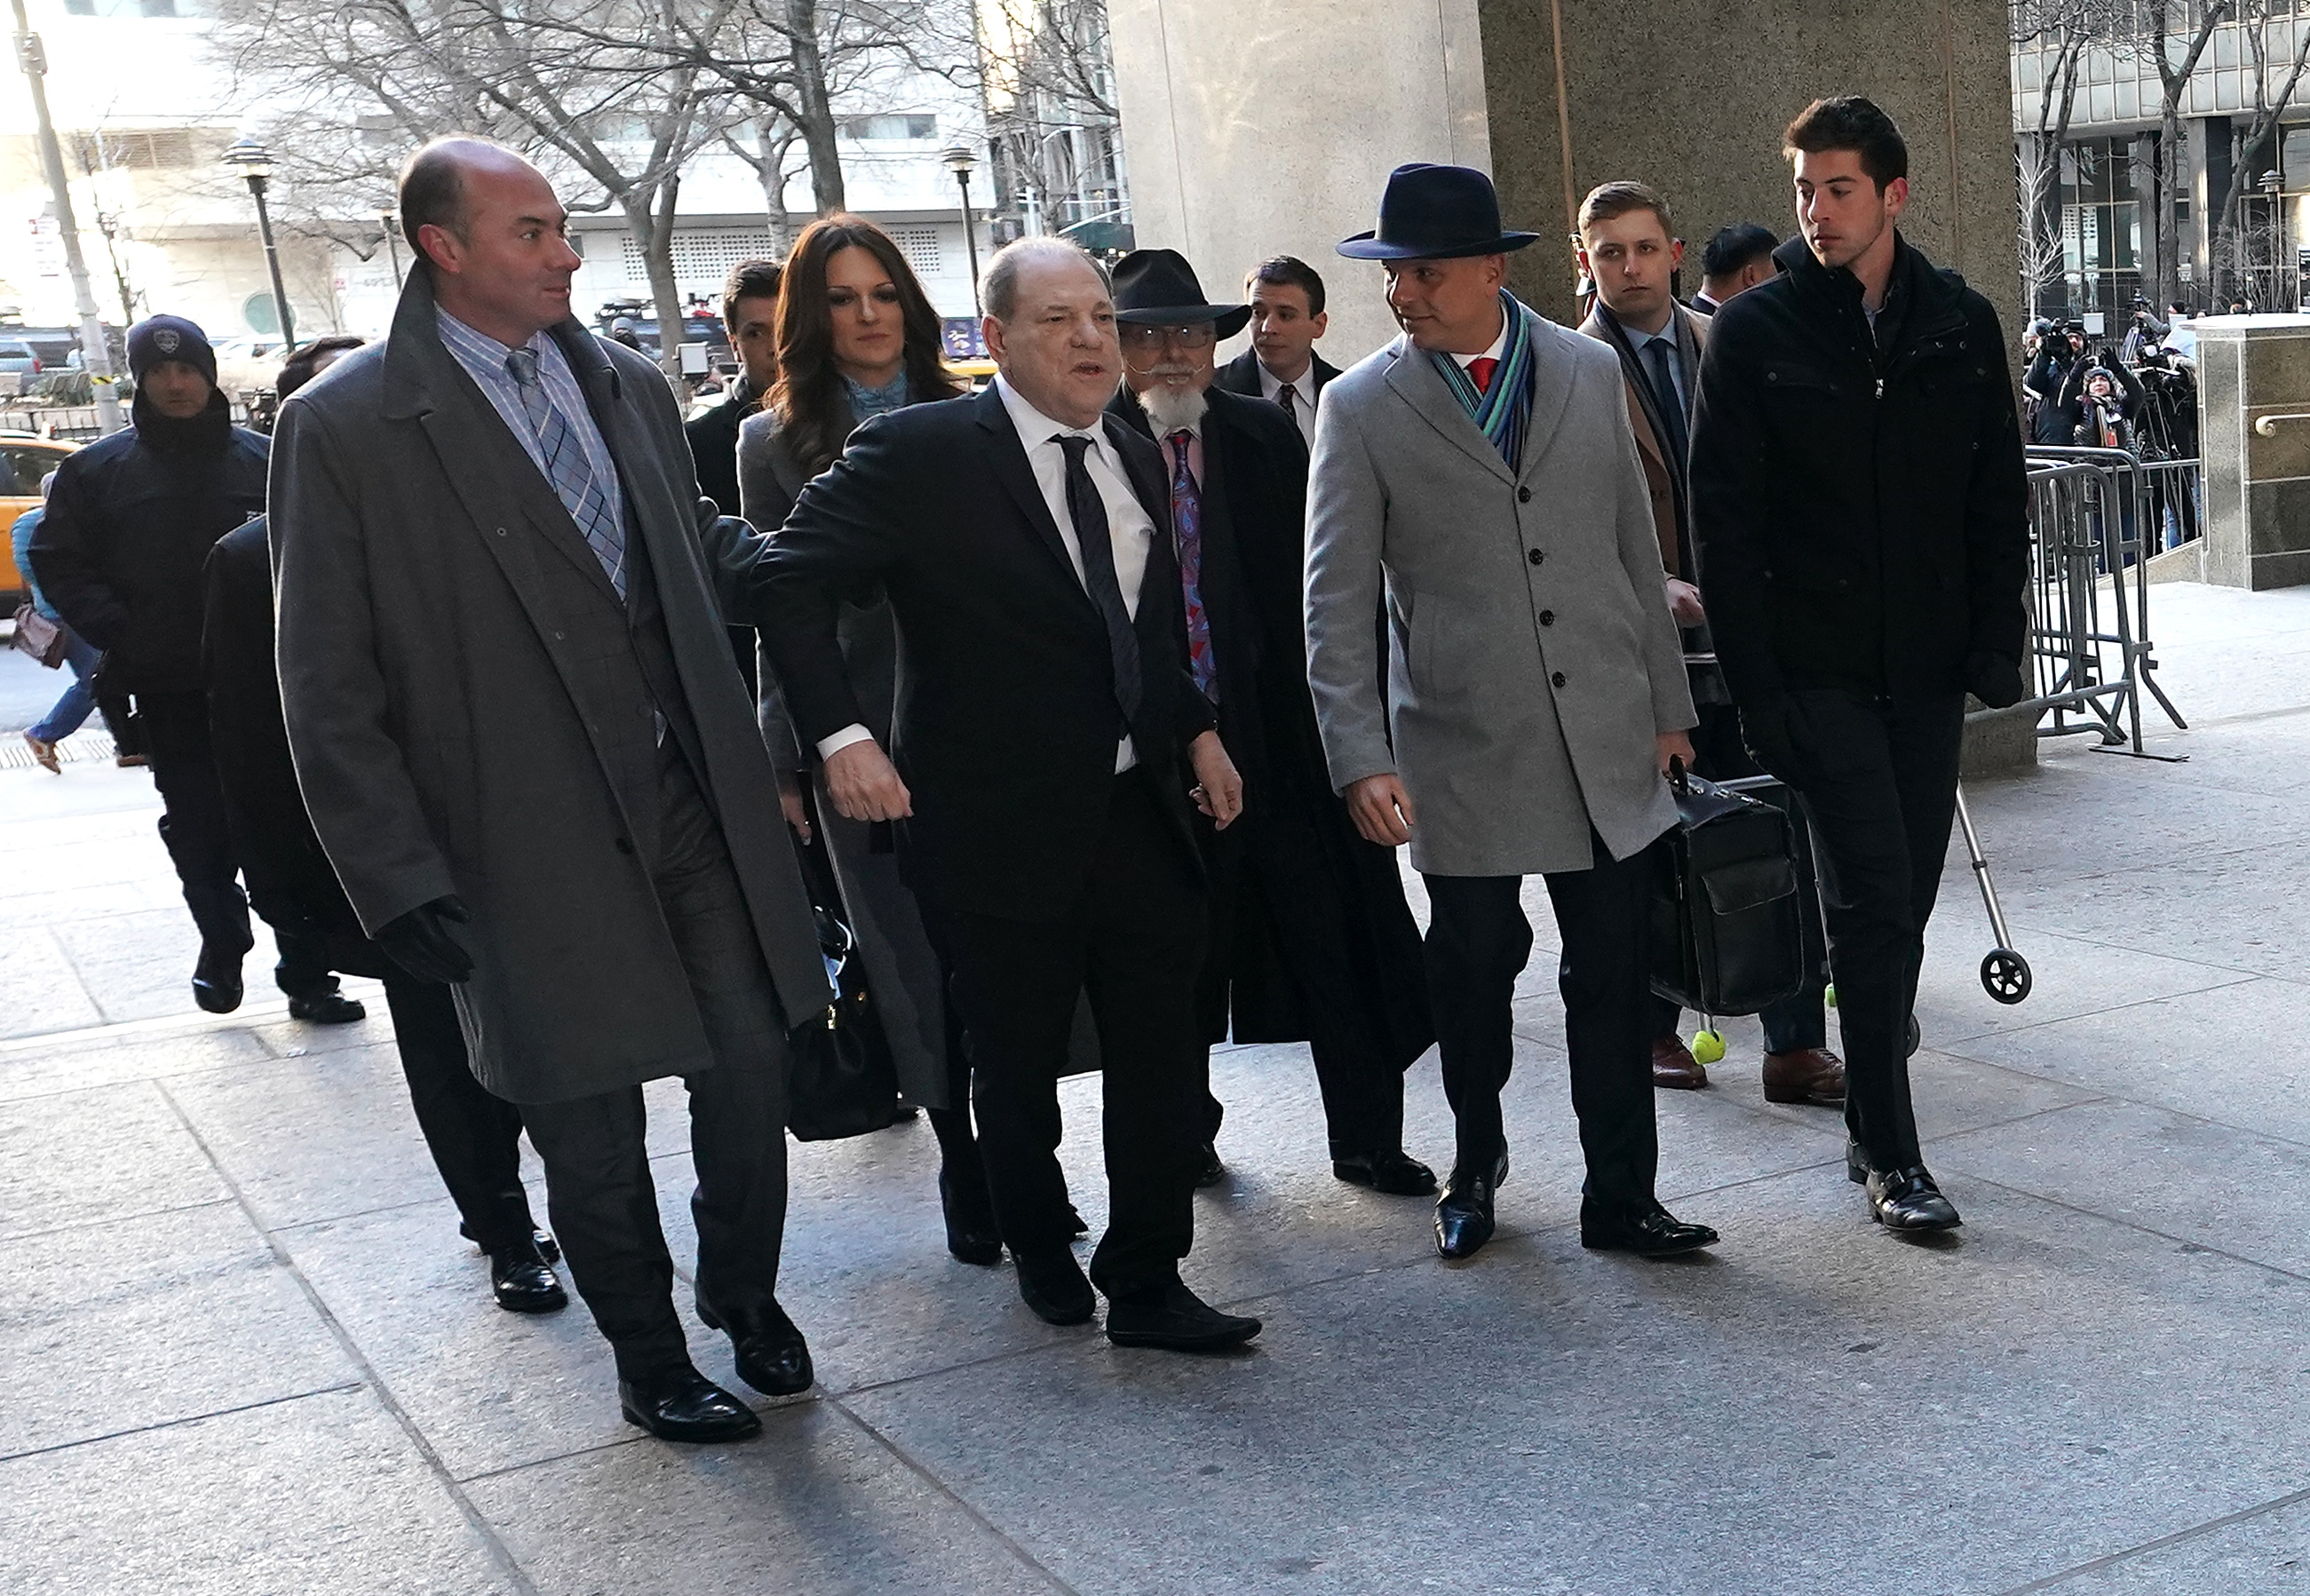 Harvey Weinstein (C) arrives at the Manhattan Criminal Court, on Jan. 22, 2020 for opening arguments in his rape trial in New York City.